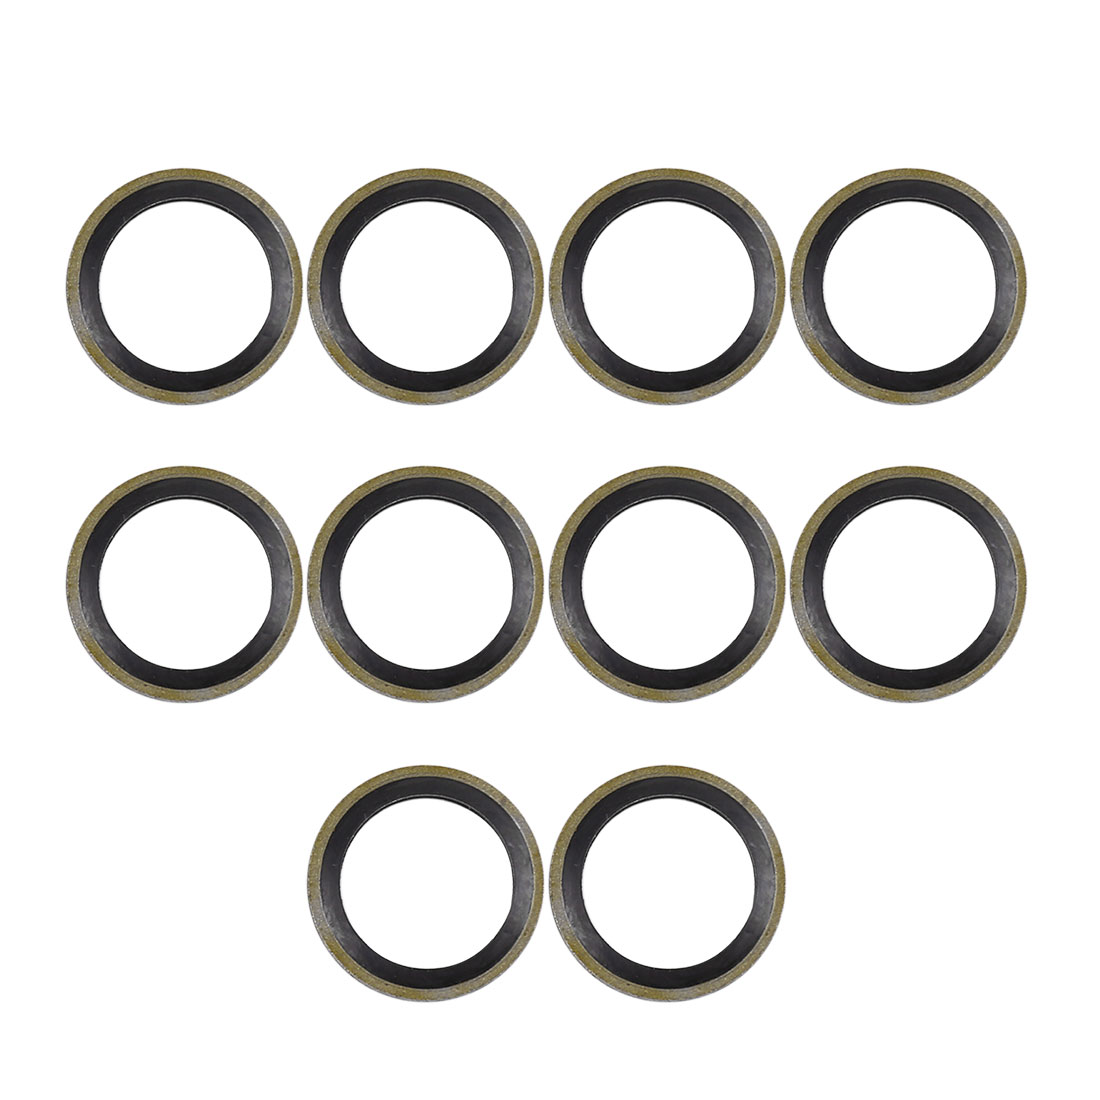 10pcs M14 Bronze Tone Car Engine Oil Drain Crush Flat Bonded Washer Gaskets